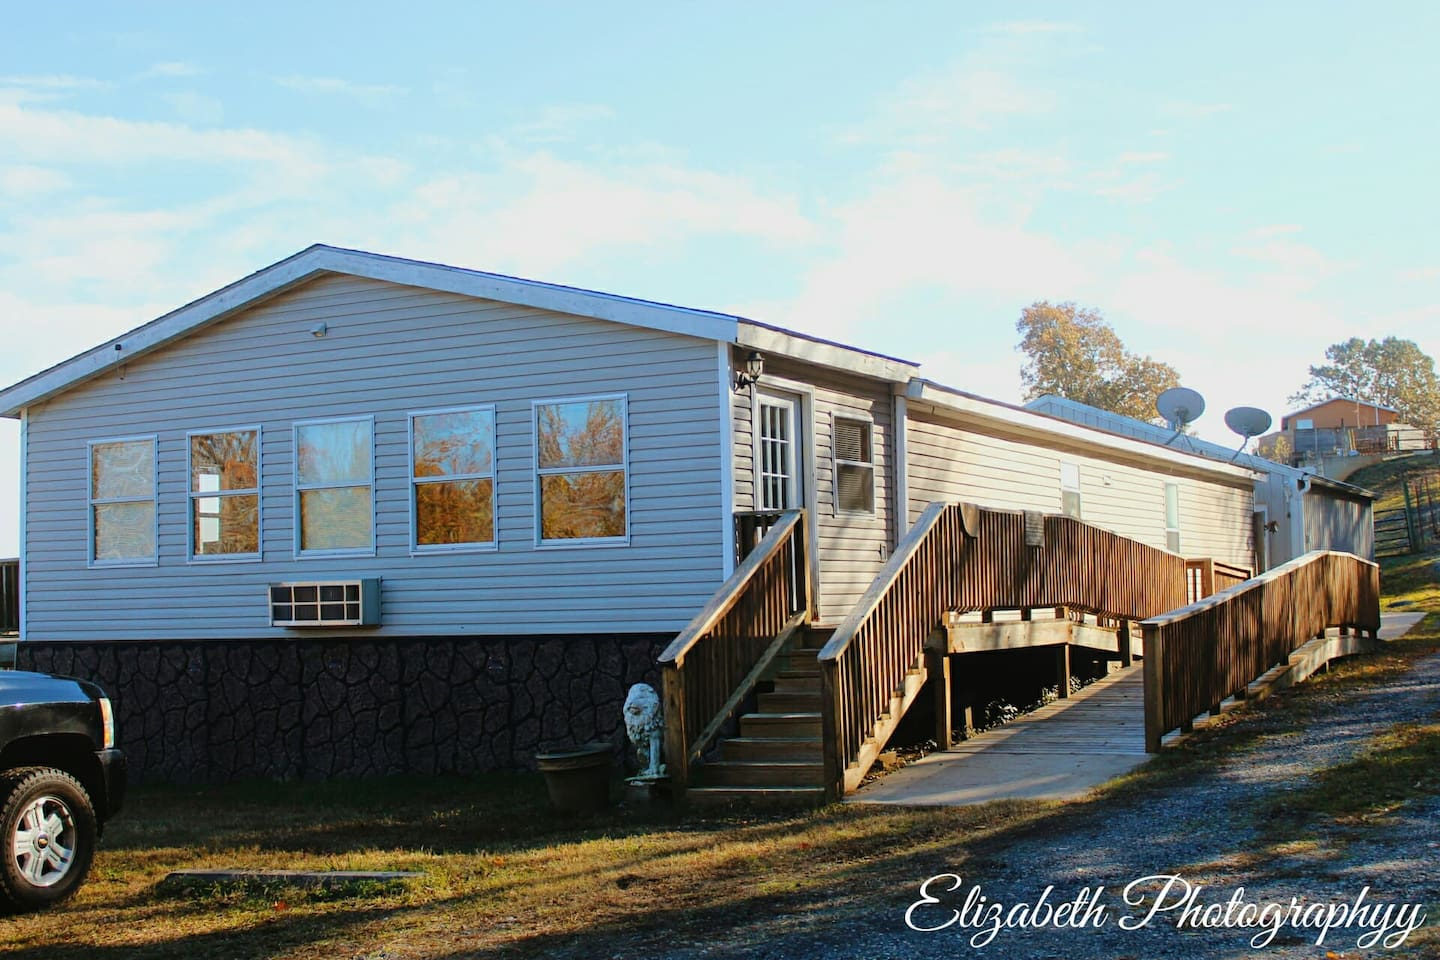 Handi-Retreat  247 Hwy 375 E. Mena Arkansas:  Sorry we are booked every week until April, This is one of our must requested vacation rentals by Work Crews, ATV trail riders, and families!